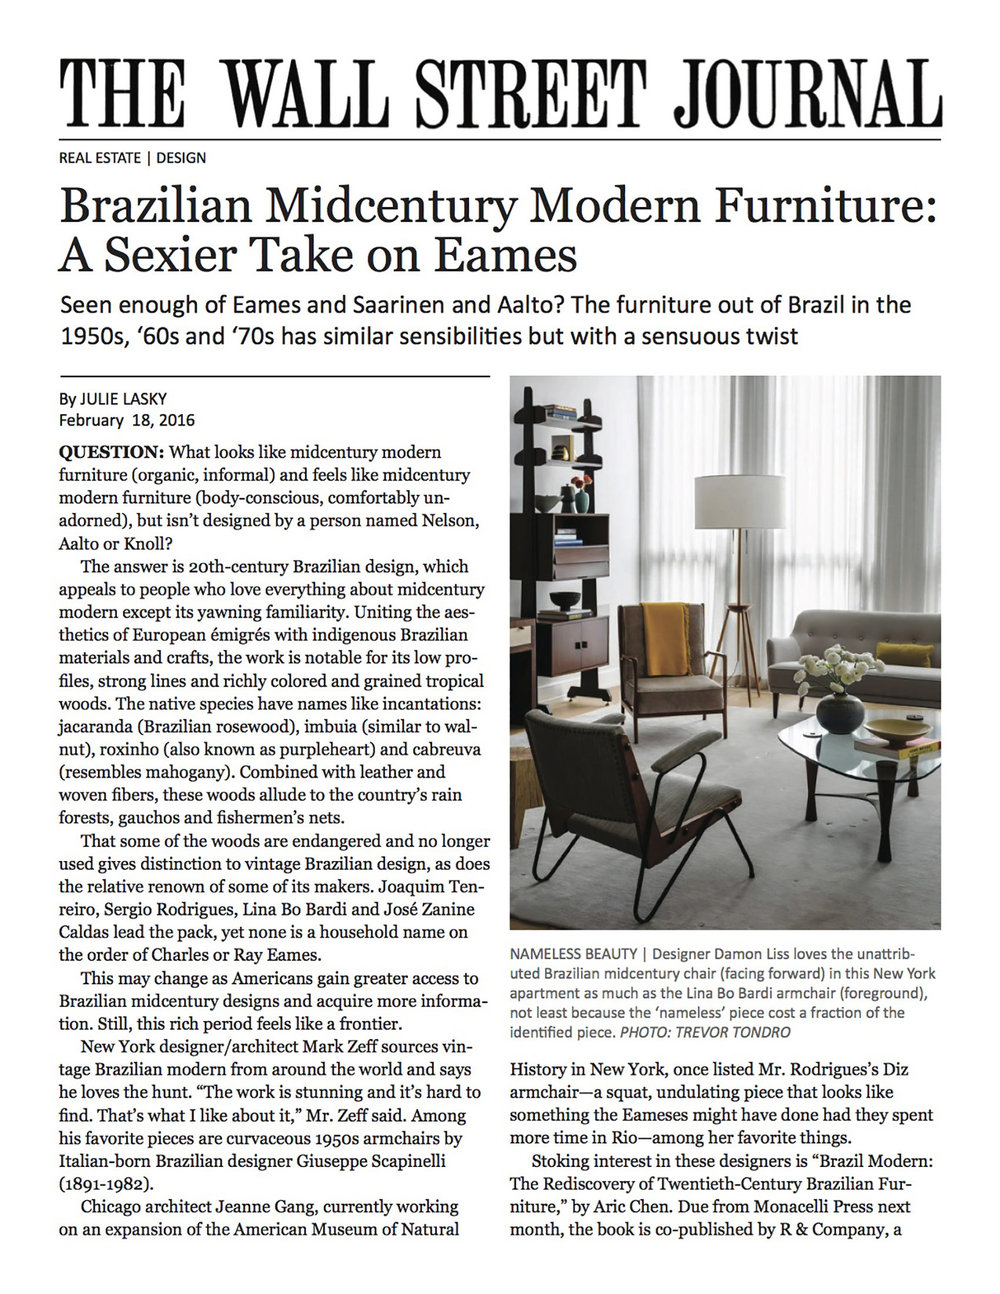 Interior Design Wall Street Journal Article Page 1